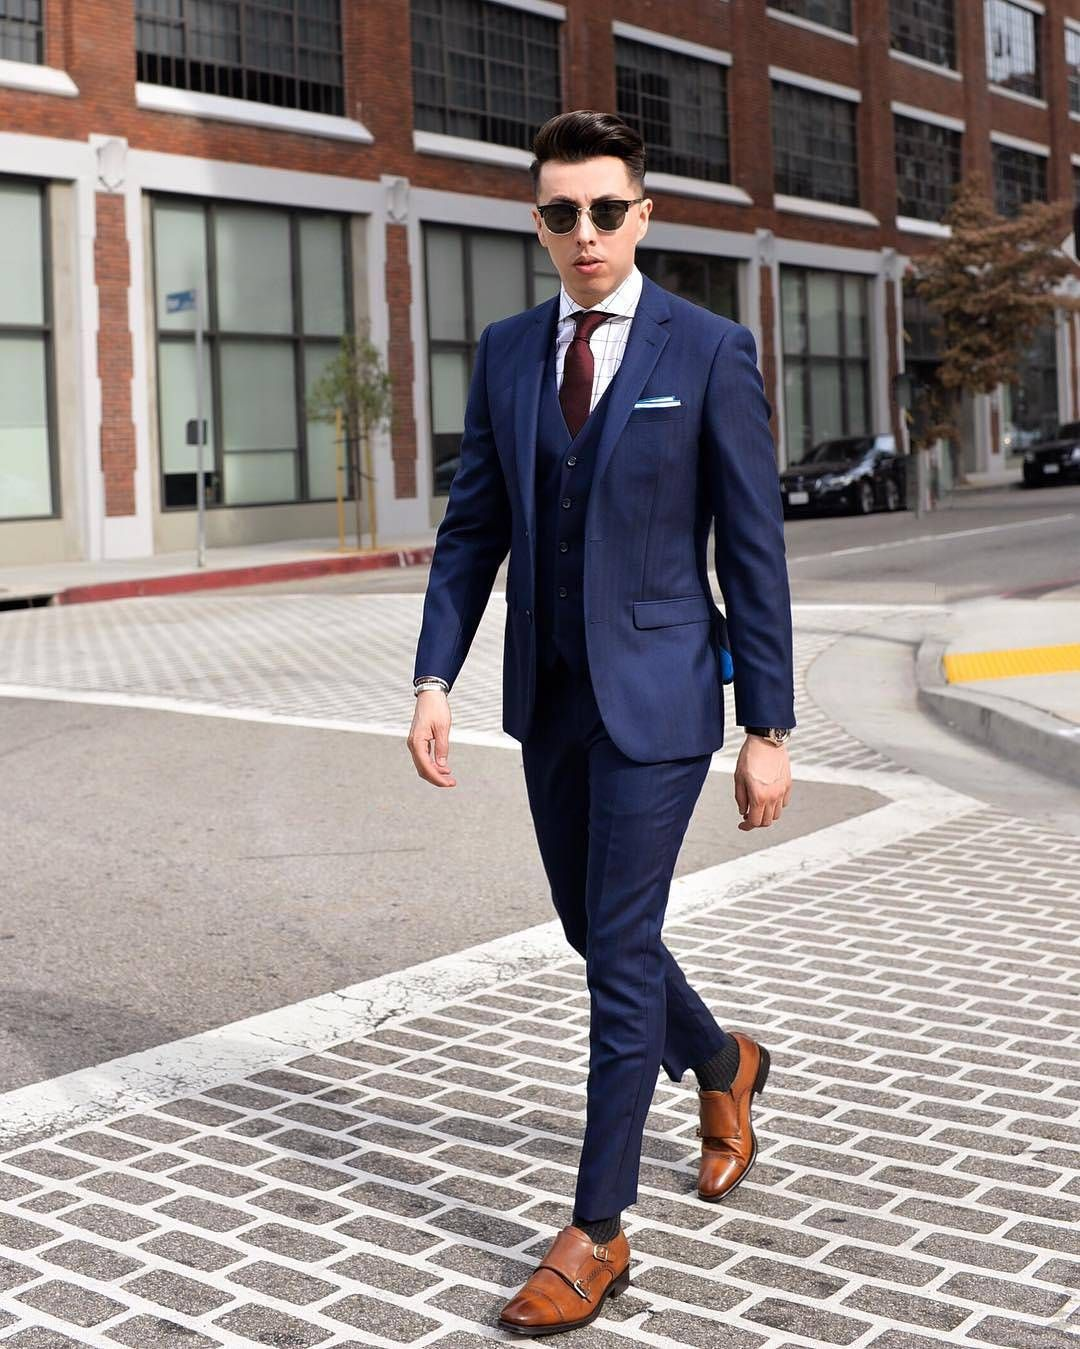 Details By Blakescott Follow Us On Instagram For More Men S Office Wear Inspiration